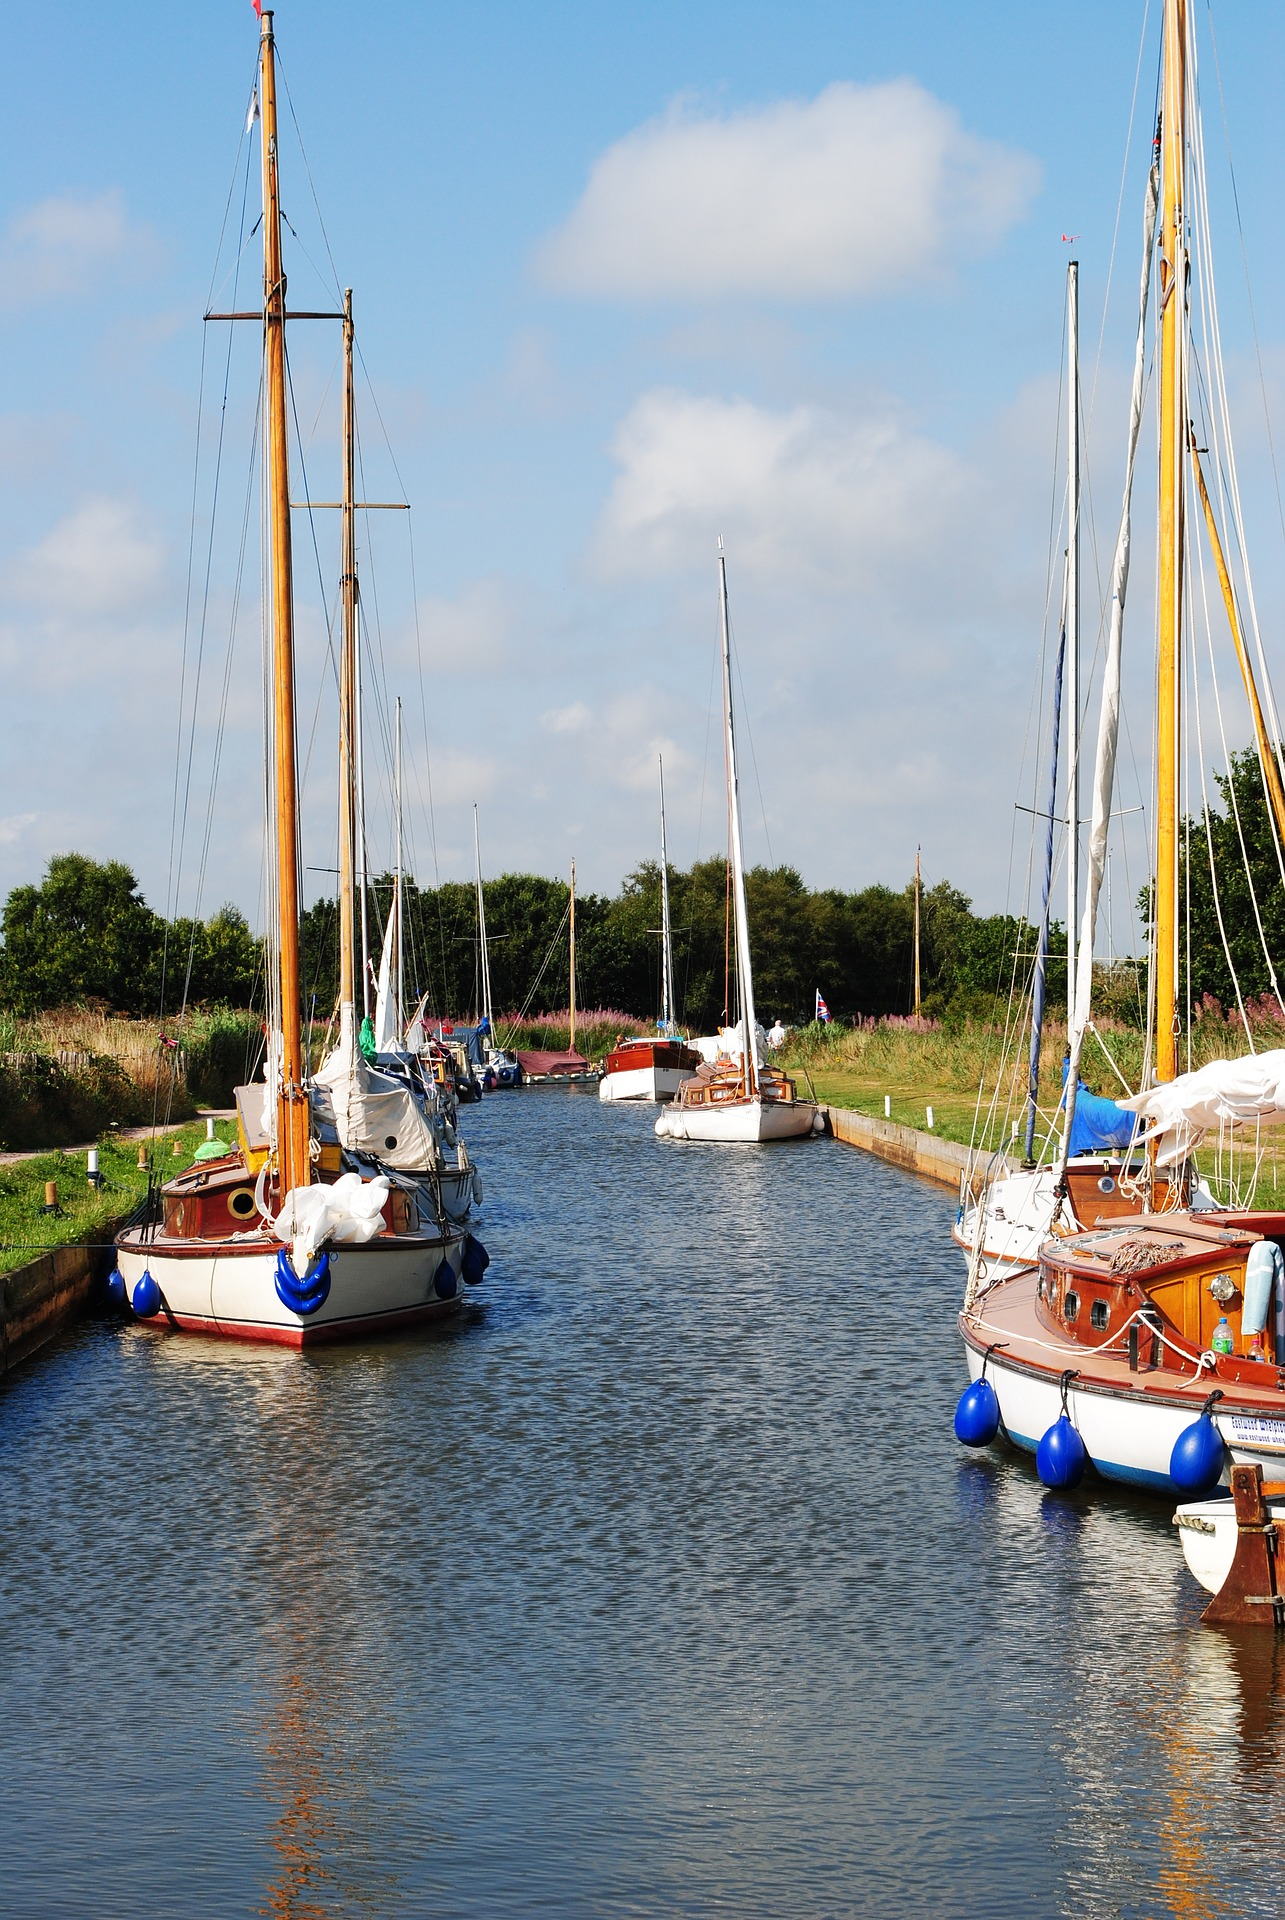 Daytripping on the Norfolk Broads. A fantastic day out for all the family. #daytrips #ukdaysout #norfolk #northnorfolkcoast #wroxham #boatingholidays #thingstodoinnorfolk #familyfunday#